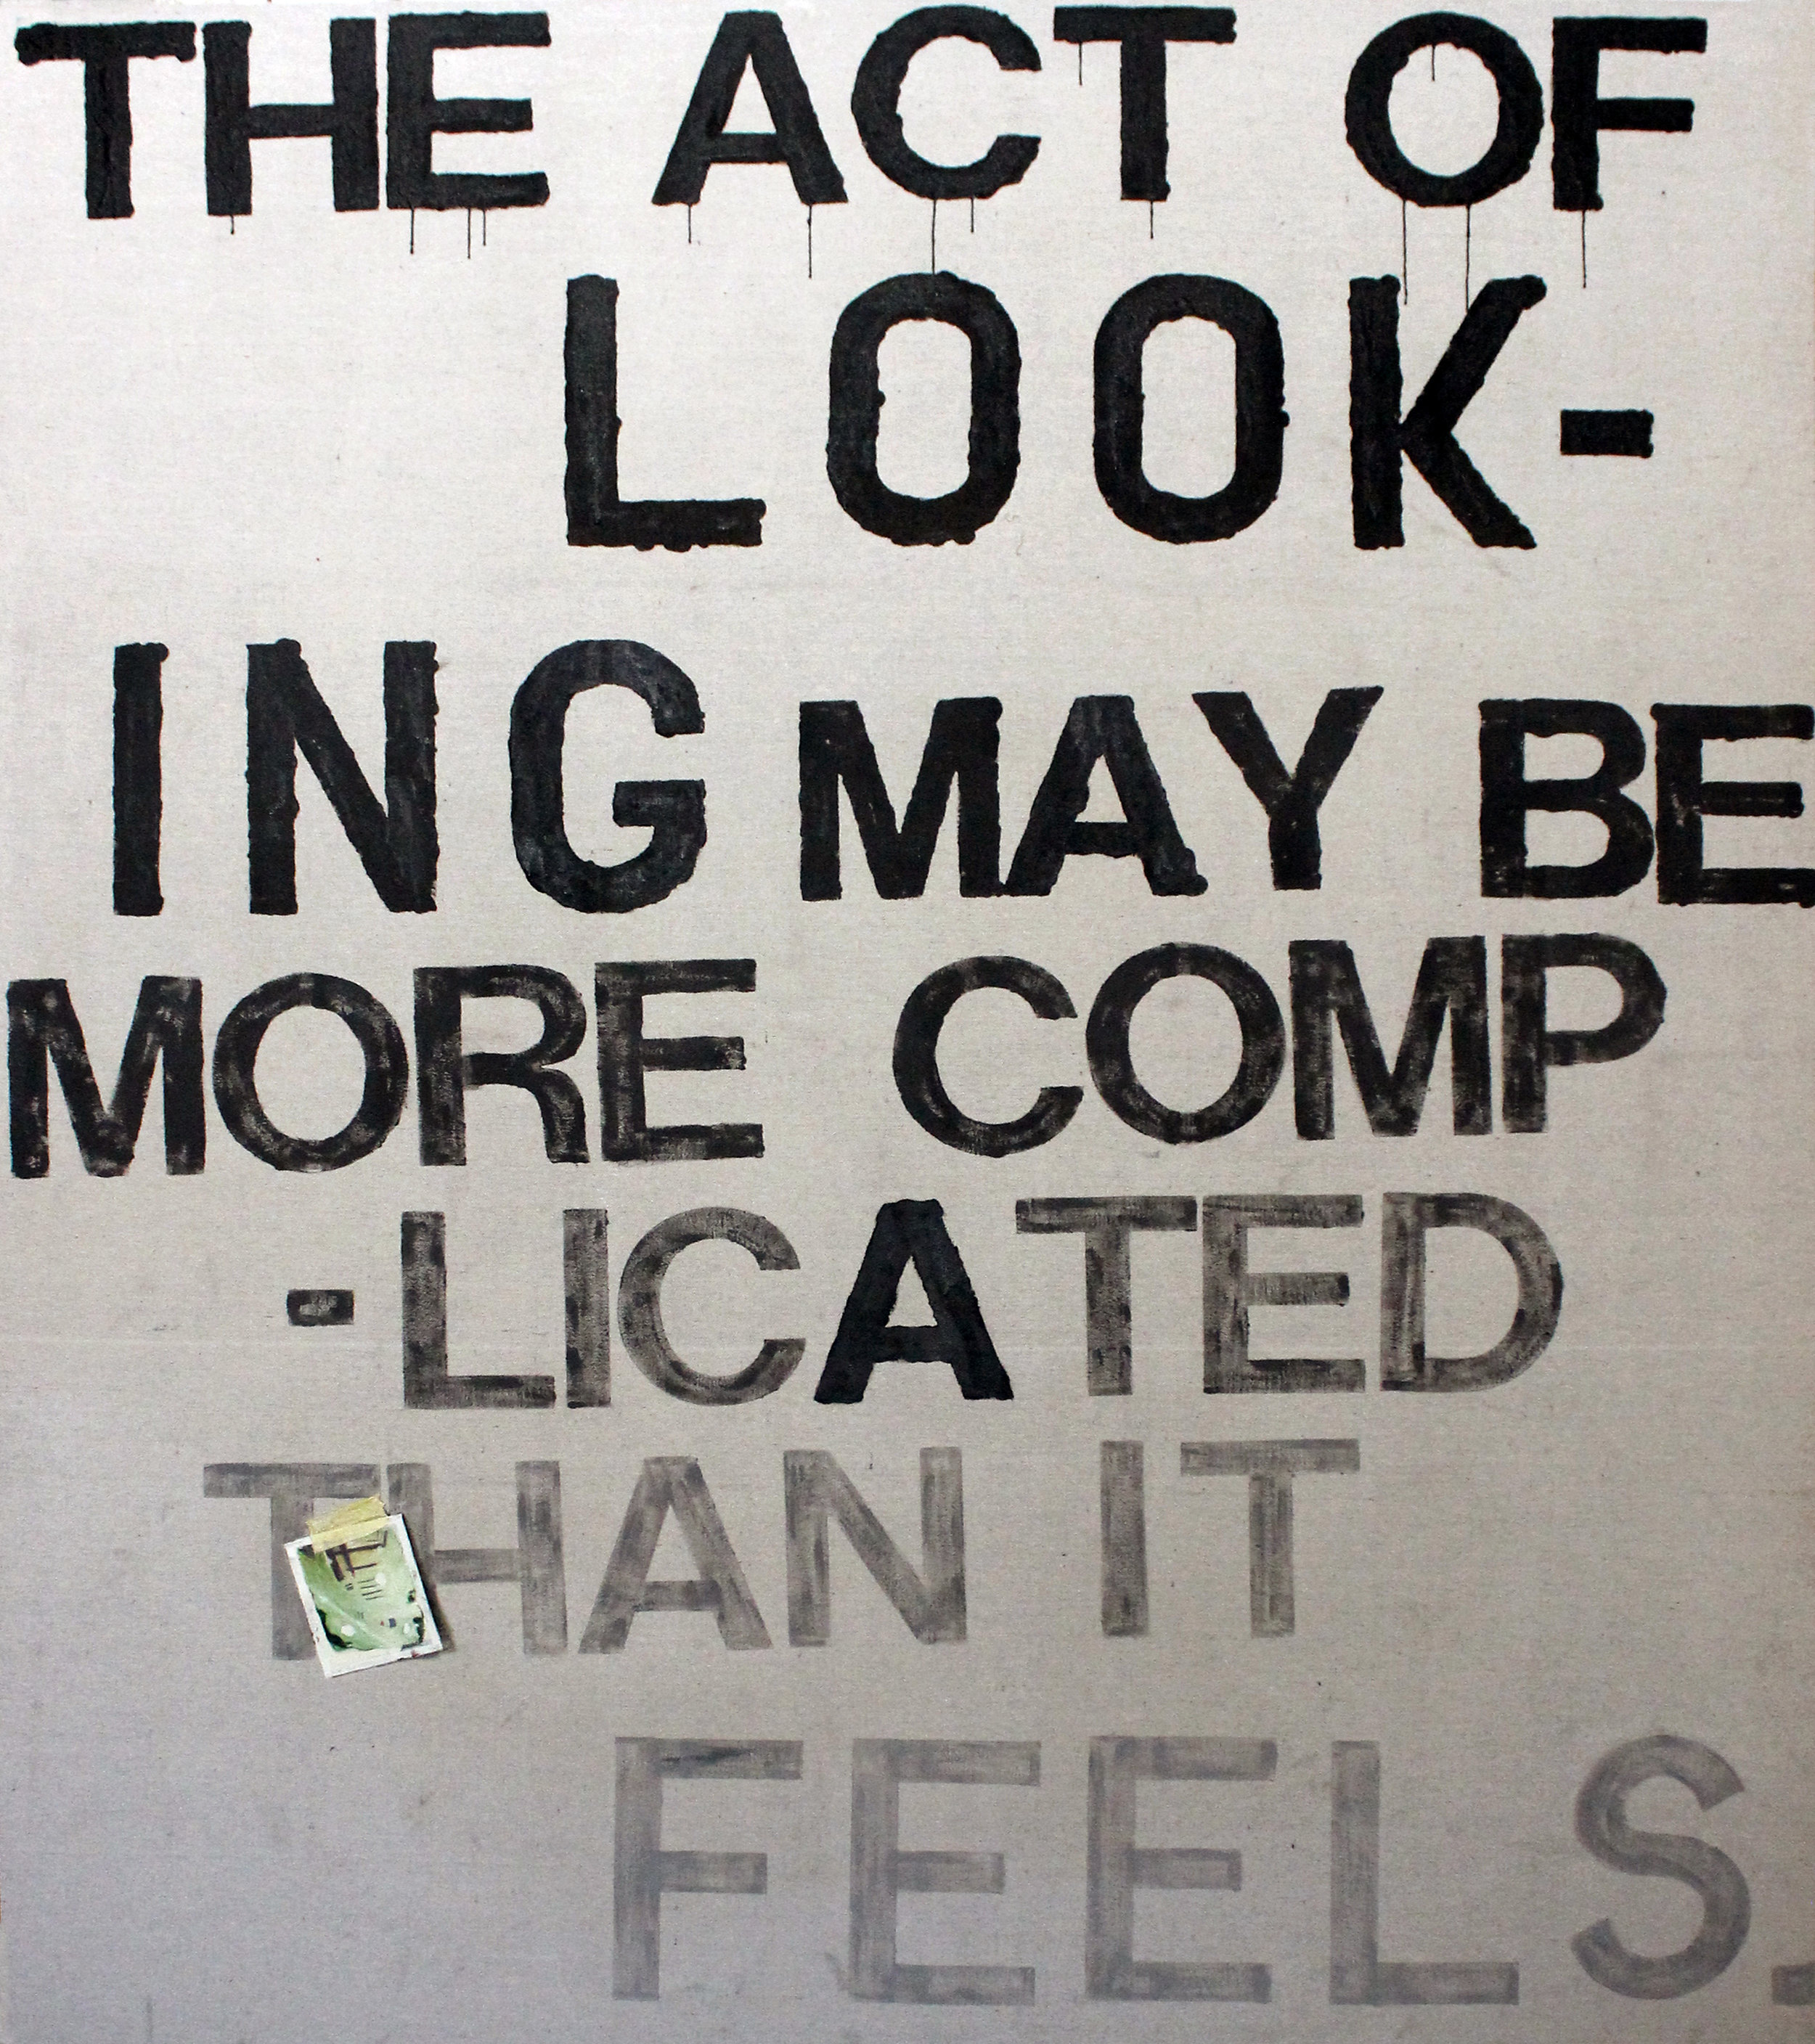 The act of looking may be more complicated than it feels.